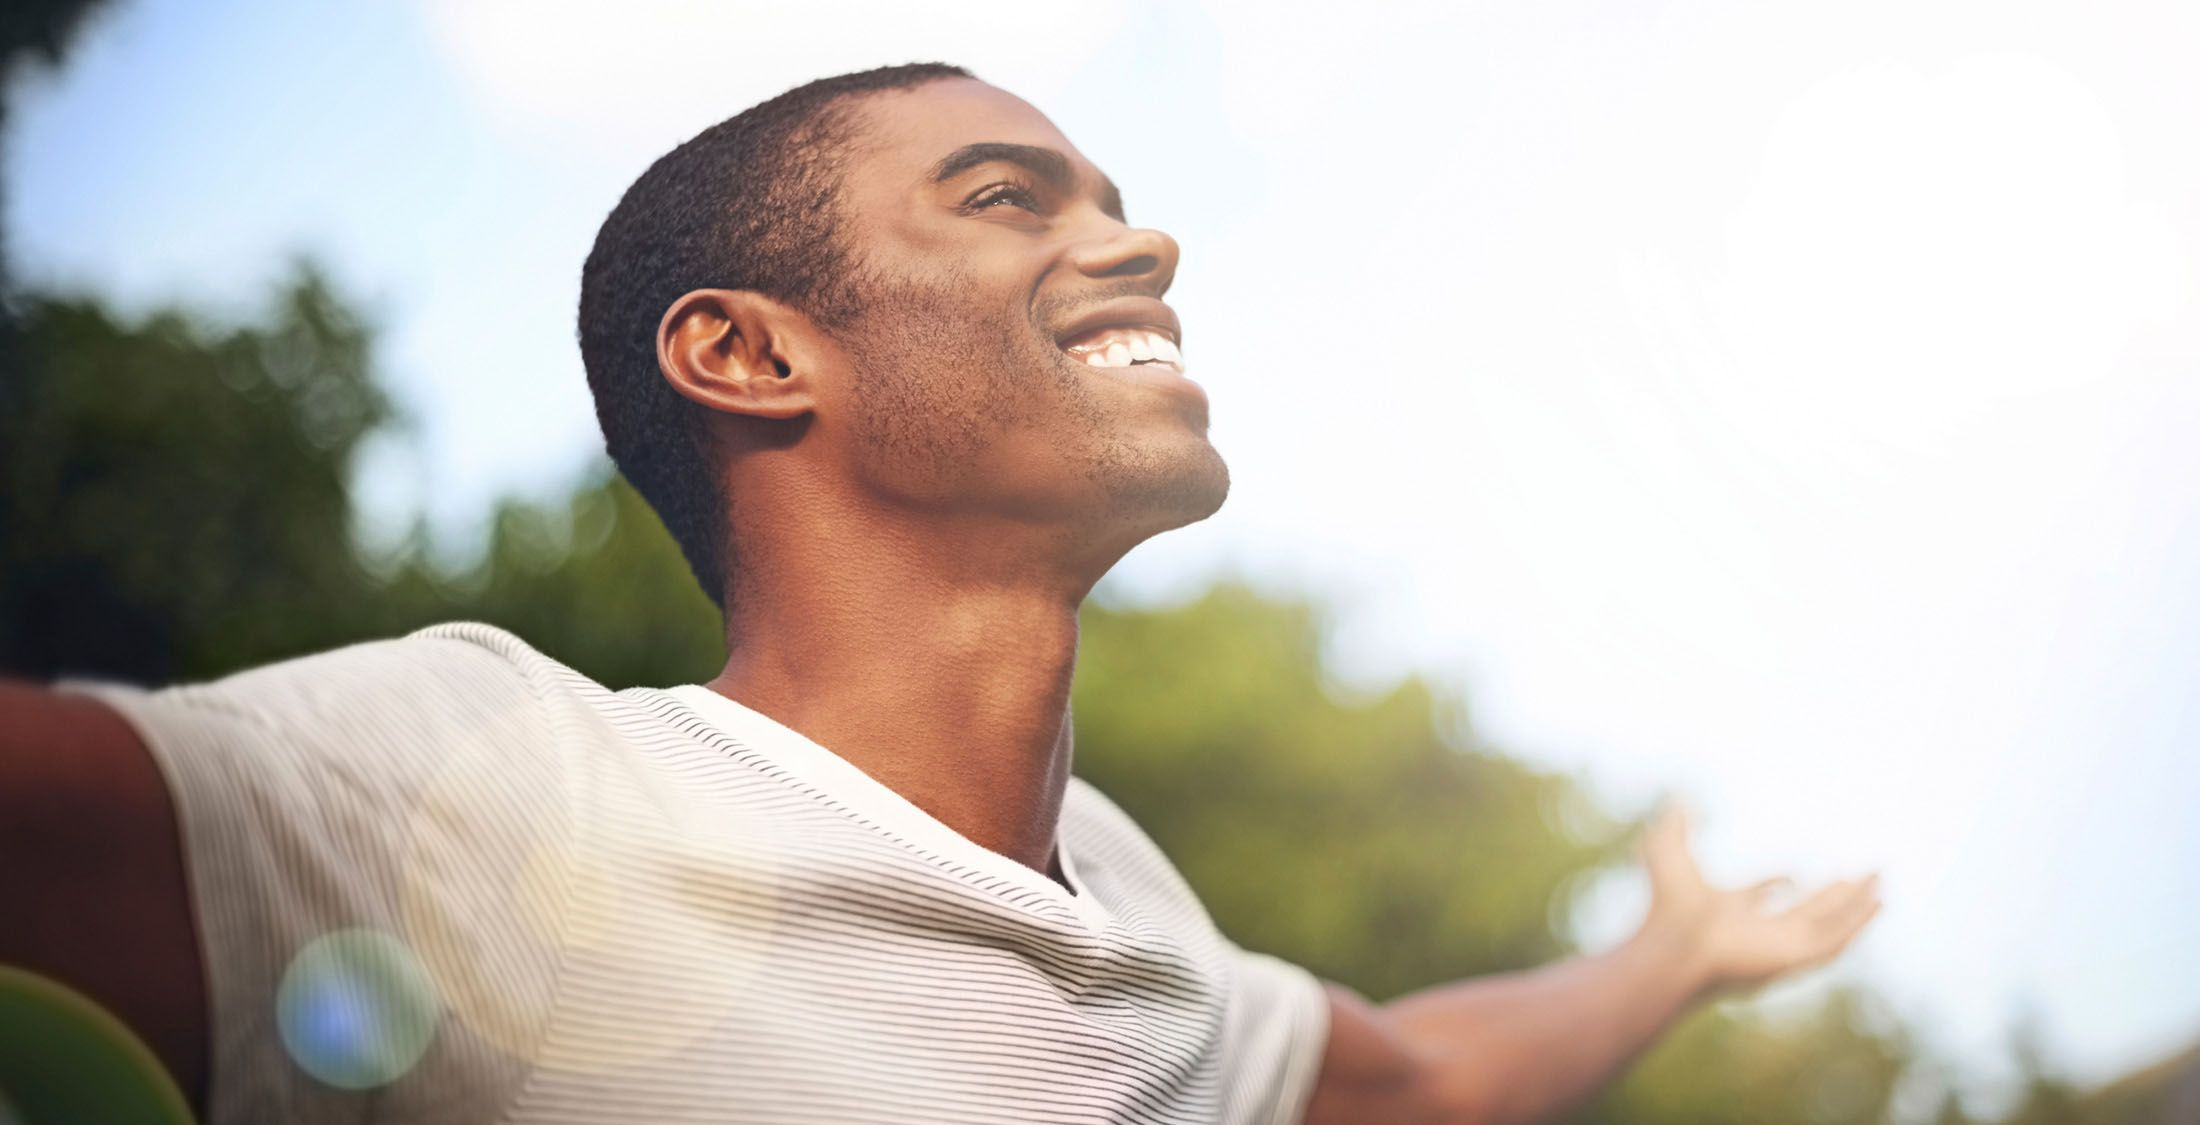 man smiling and spreading arms